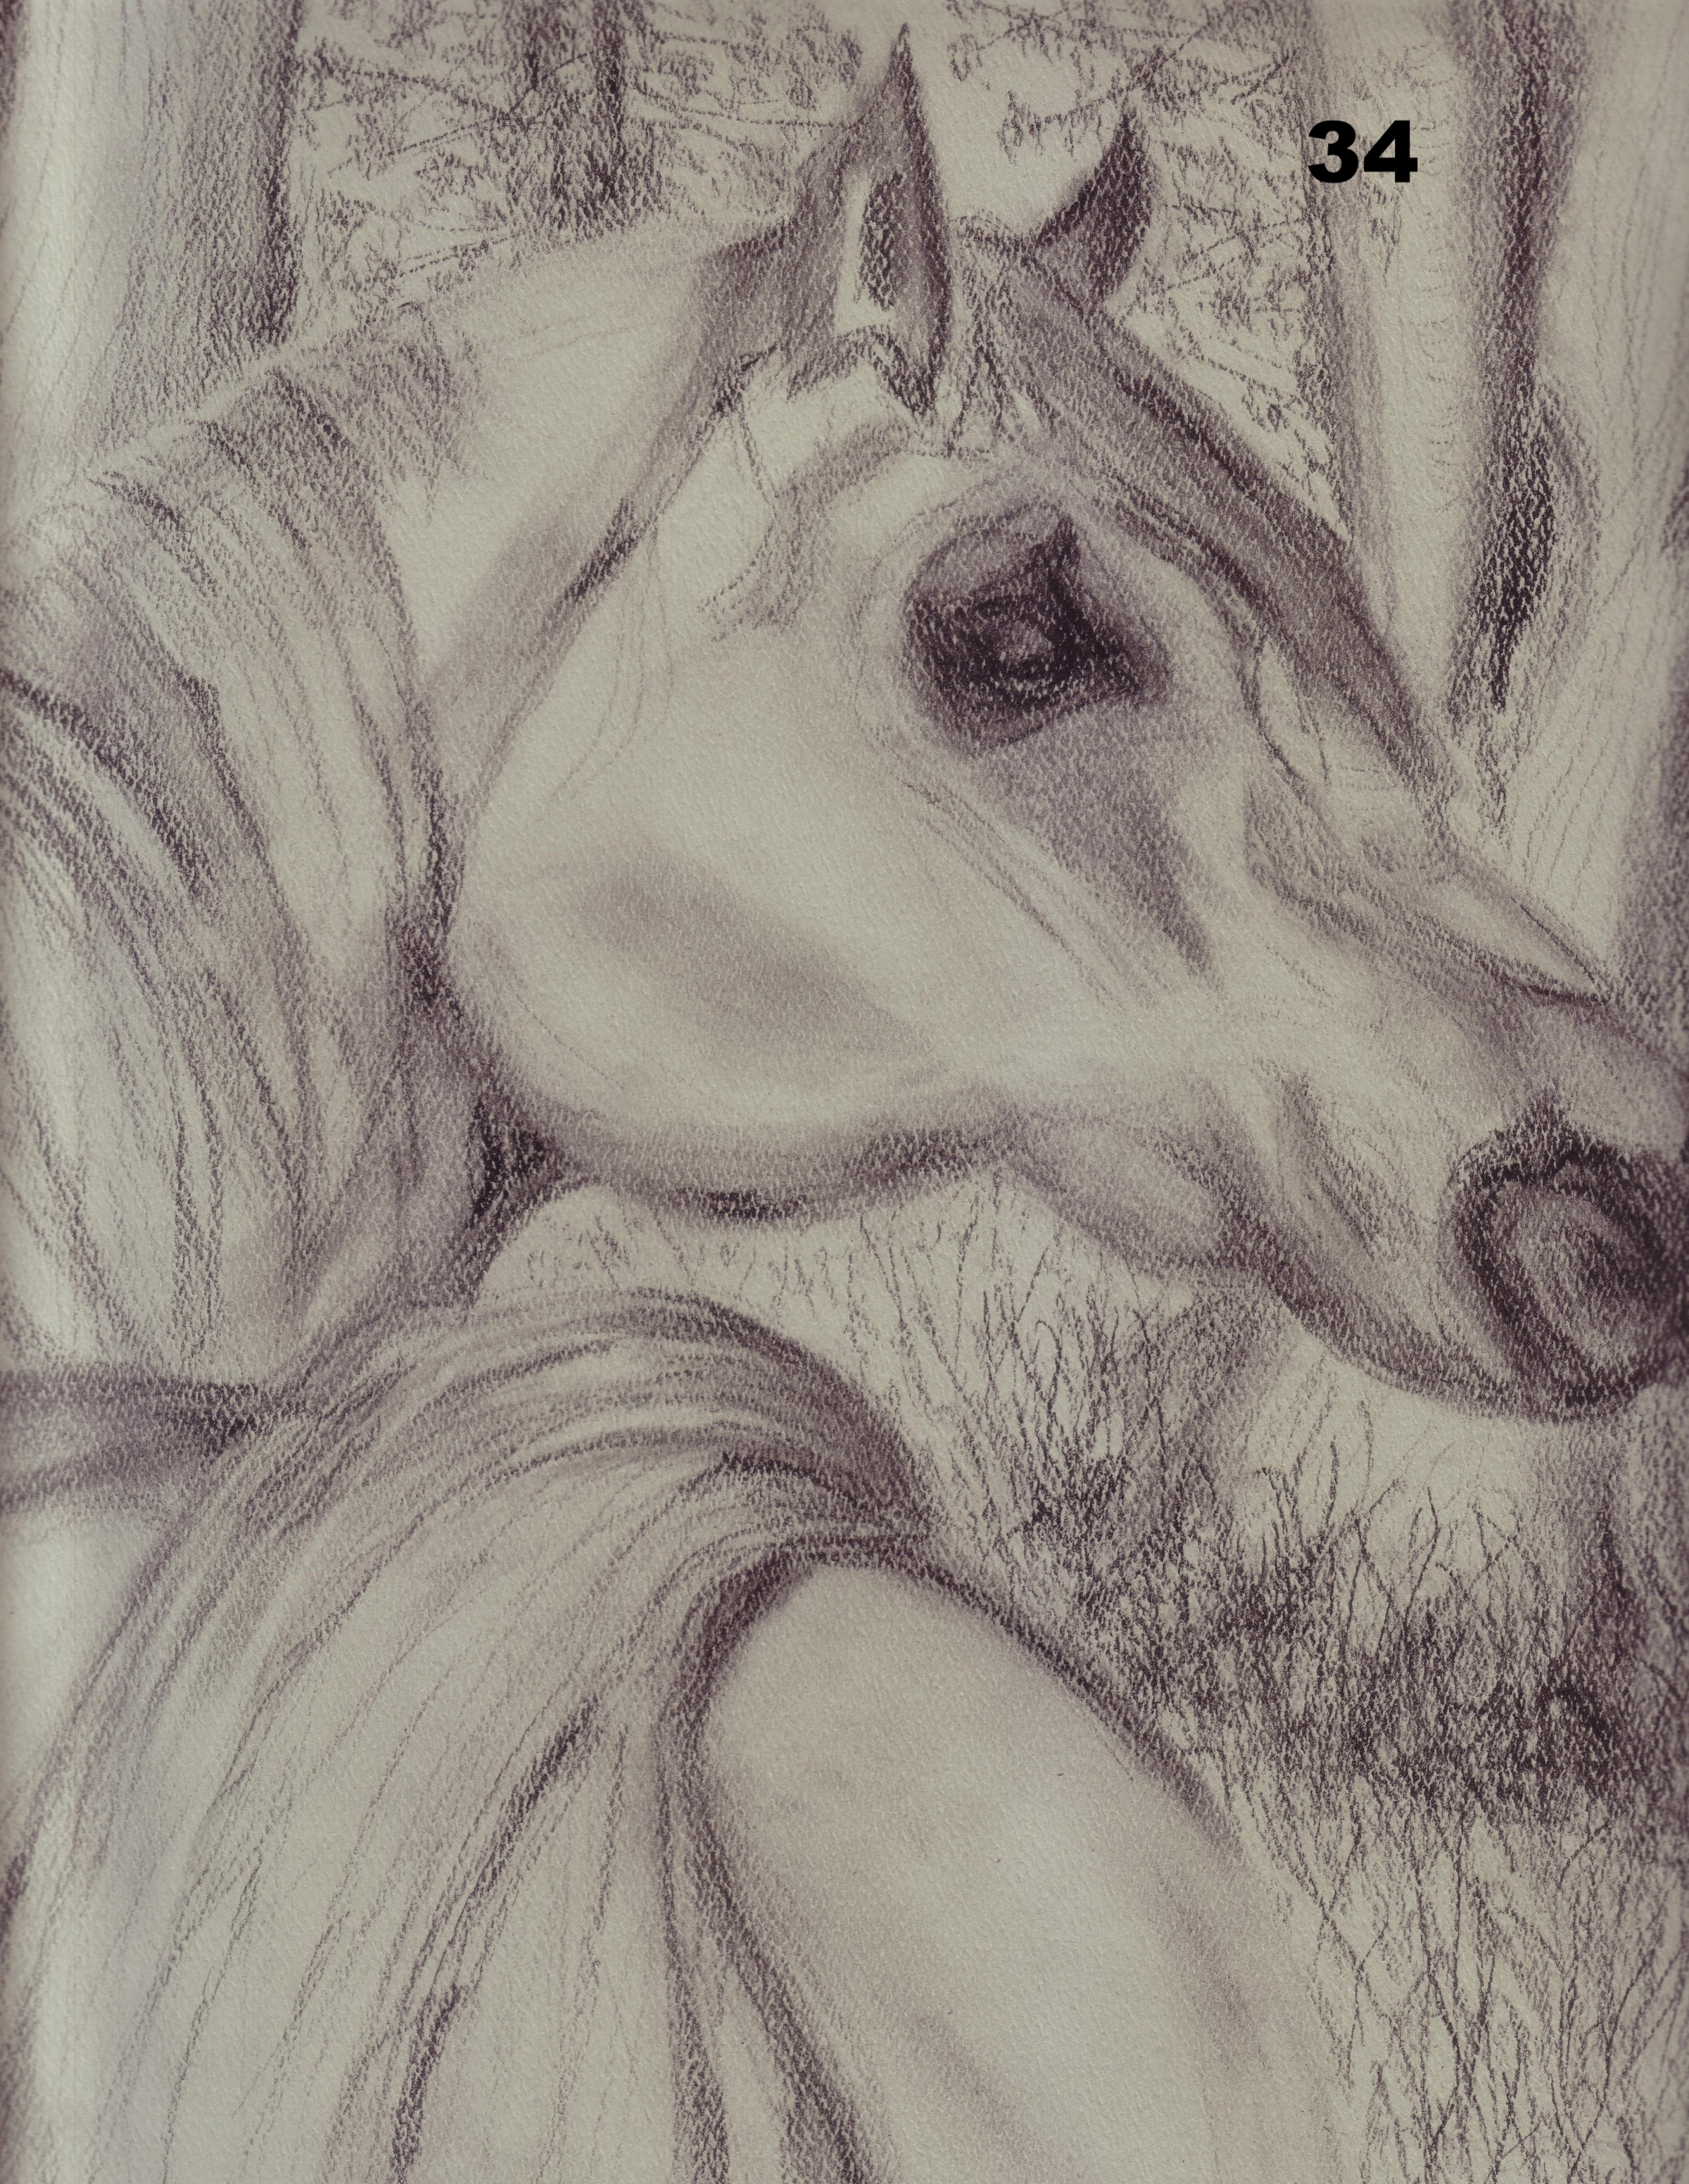 Forest Pause, Charcoal on paper.